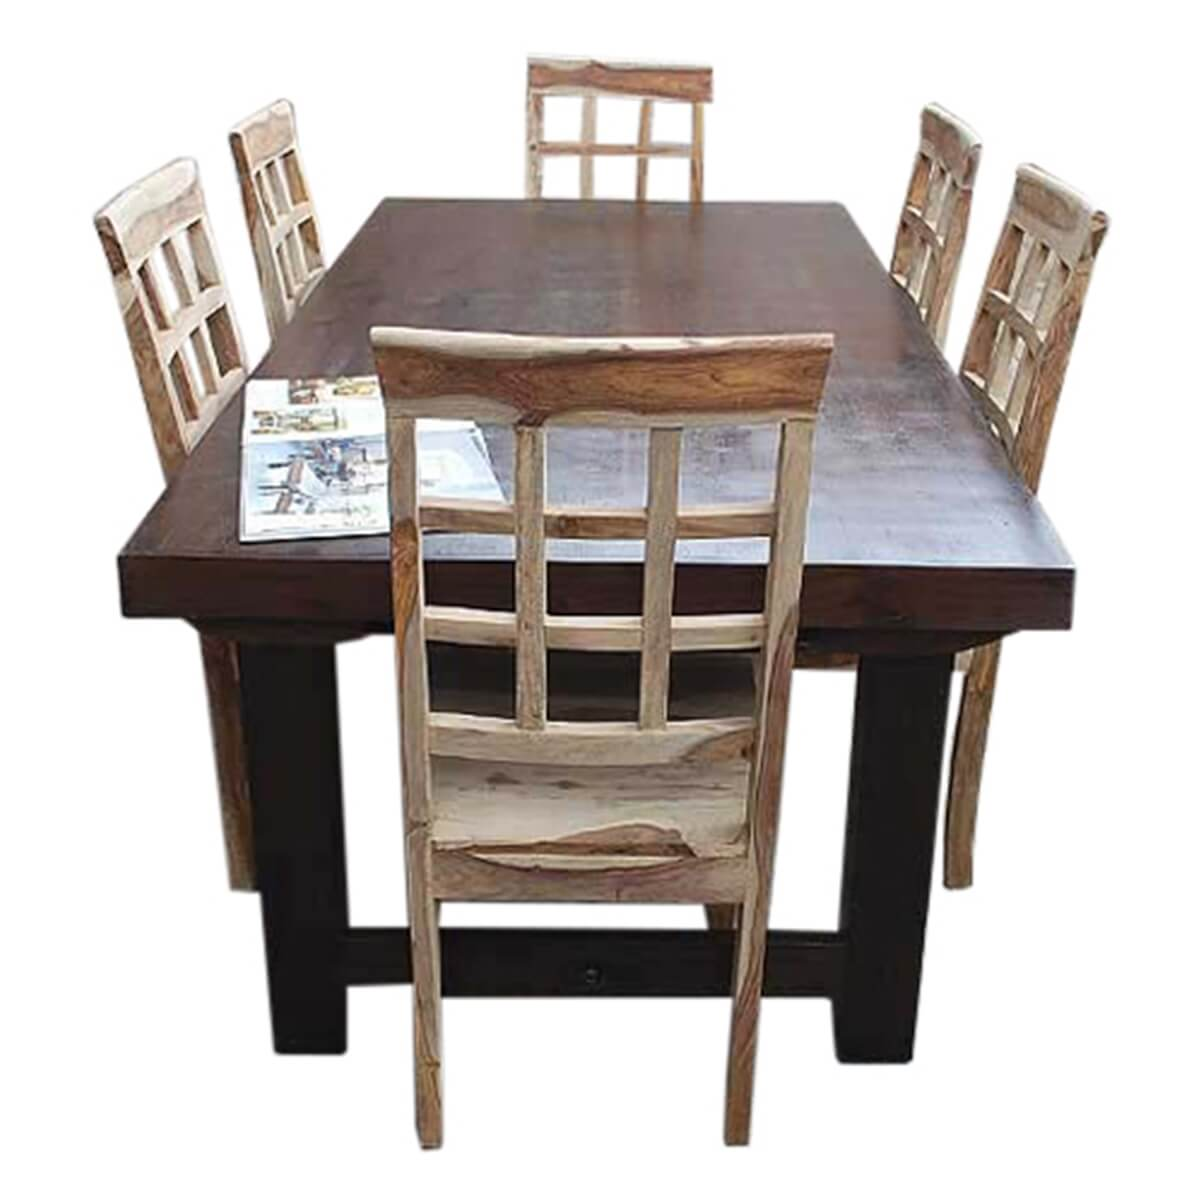 Santa Fe Solid Wood Rustic Dining Table and Chair Set For  : 13293 from www.sierralivingconcepts.com size 1200 x 1200 jpeg 336kB